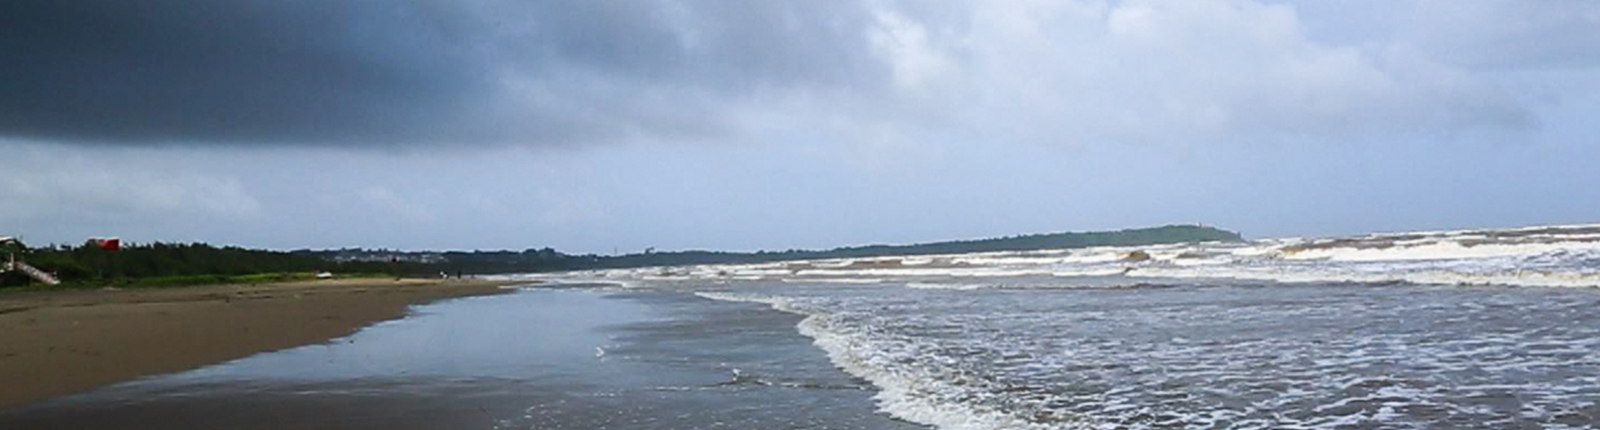 goa waves